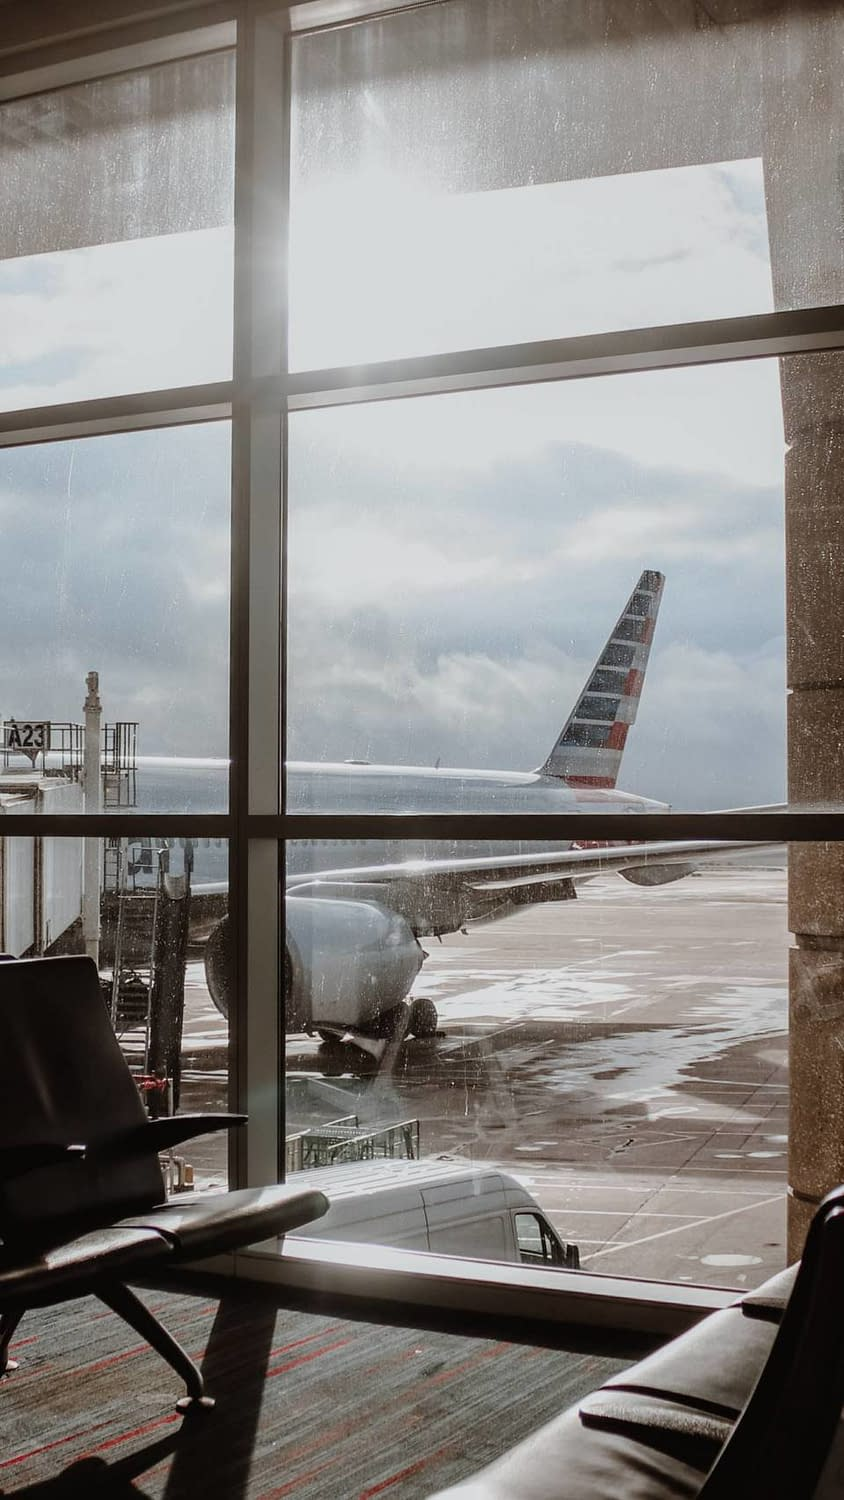 An American Airlines aircraft sits at gate A23 in their DFW Hub.